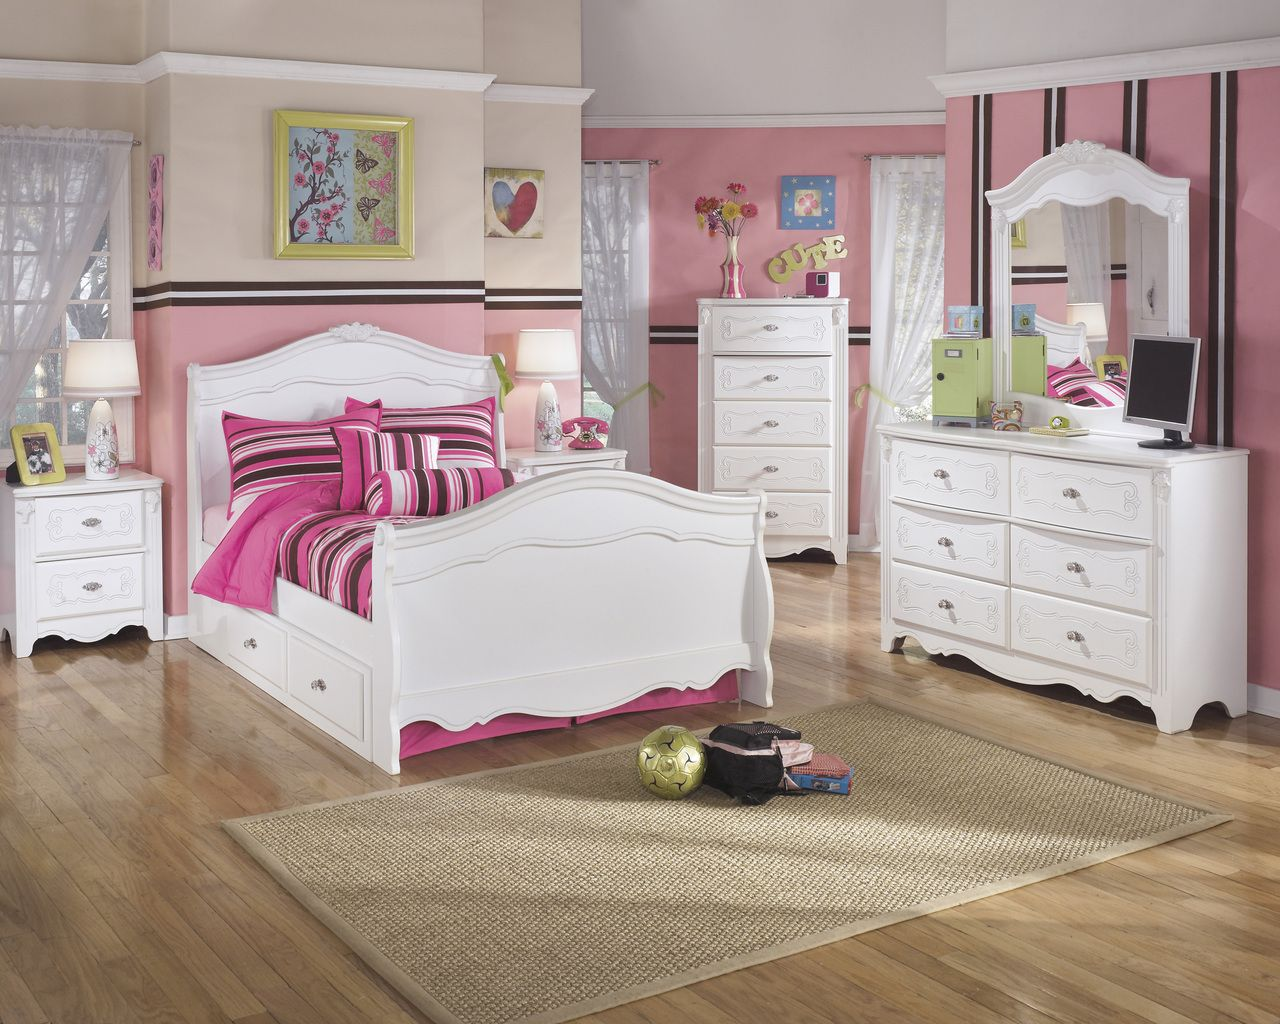 Exquisite White Full Sleigh Bed With Under Bed Storage